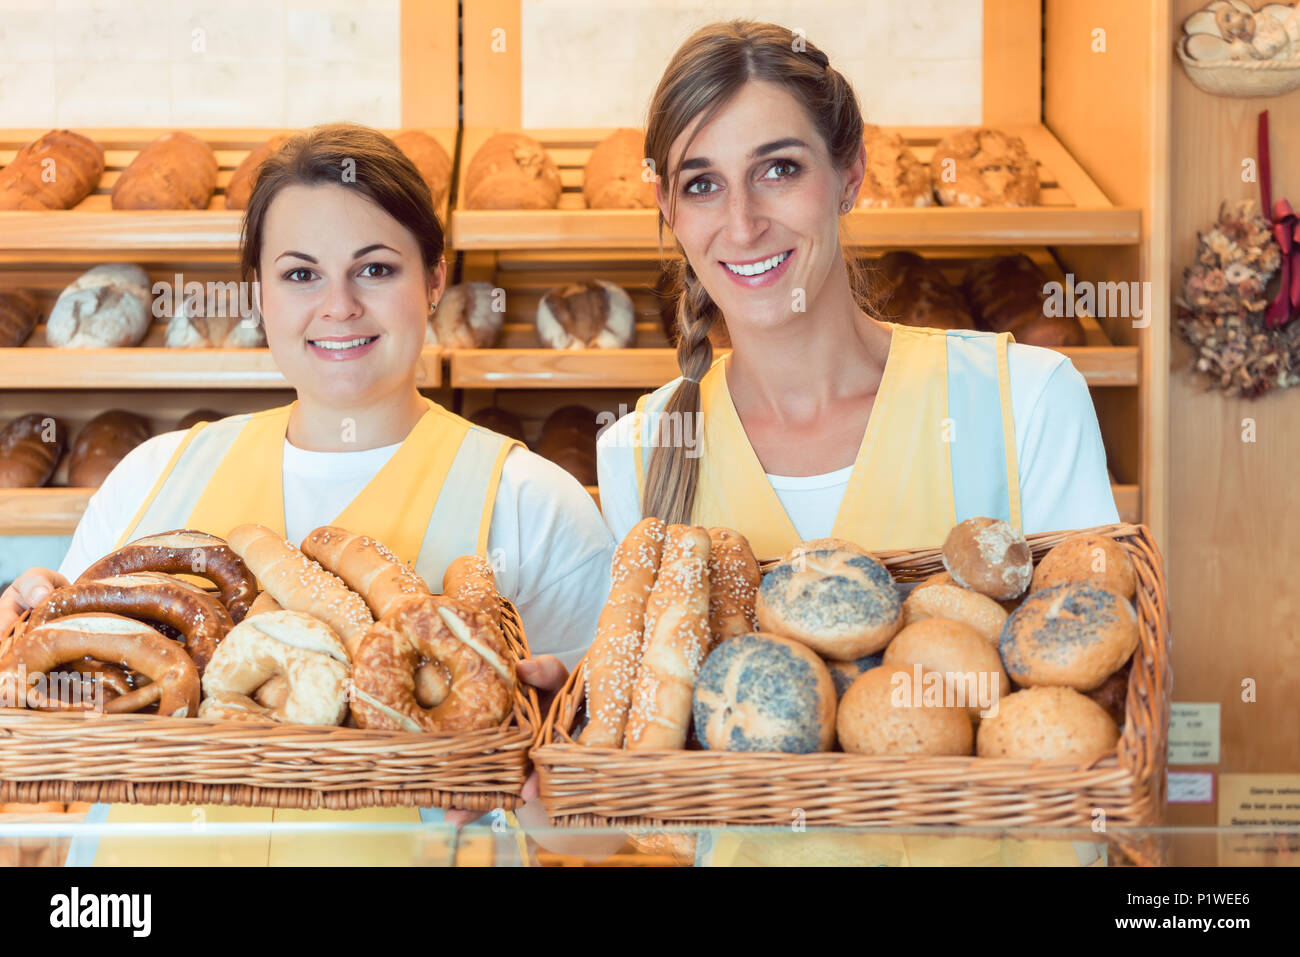 Two salesladies in bakery with basket of bread showing them to the camera - Stock Image